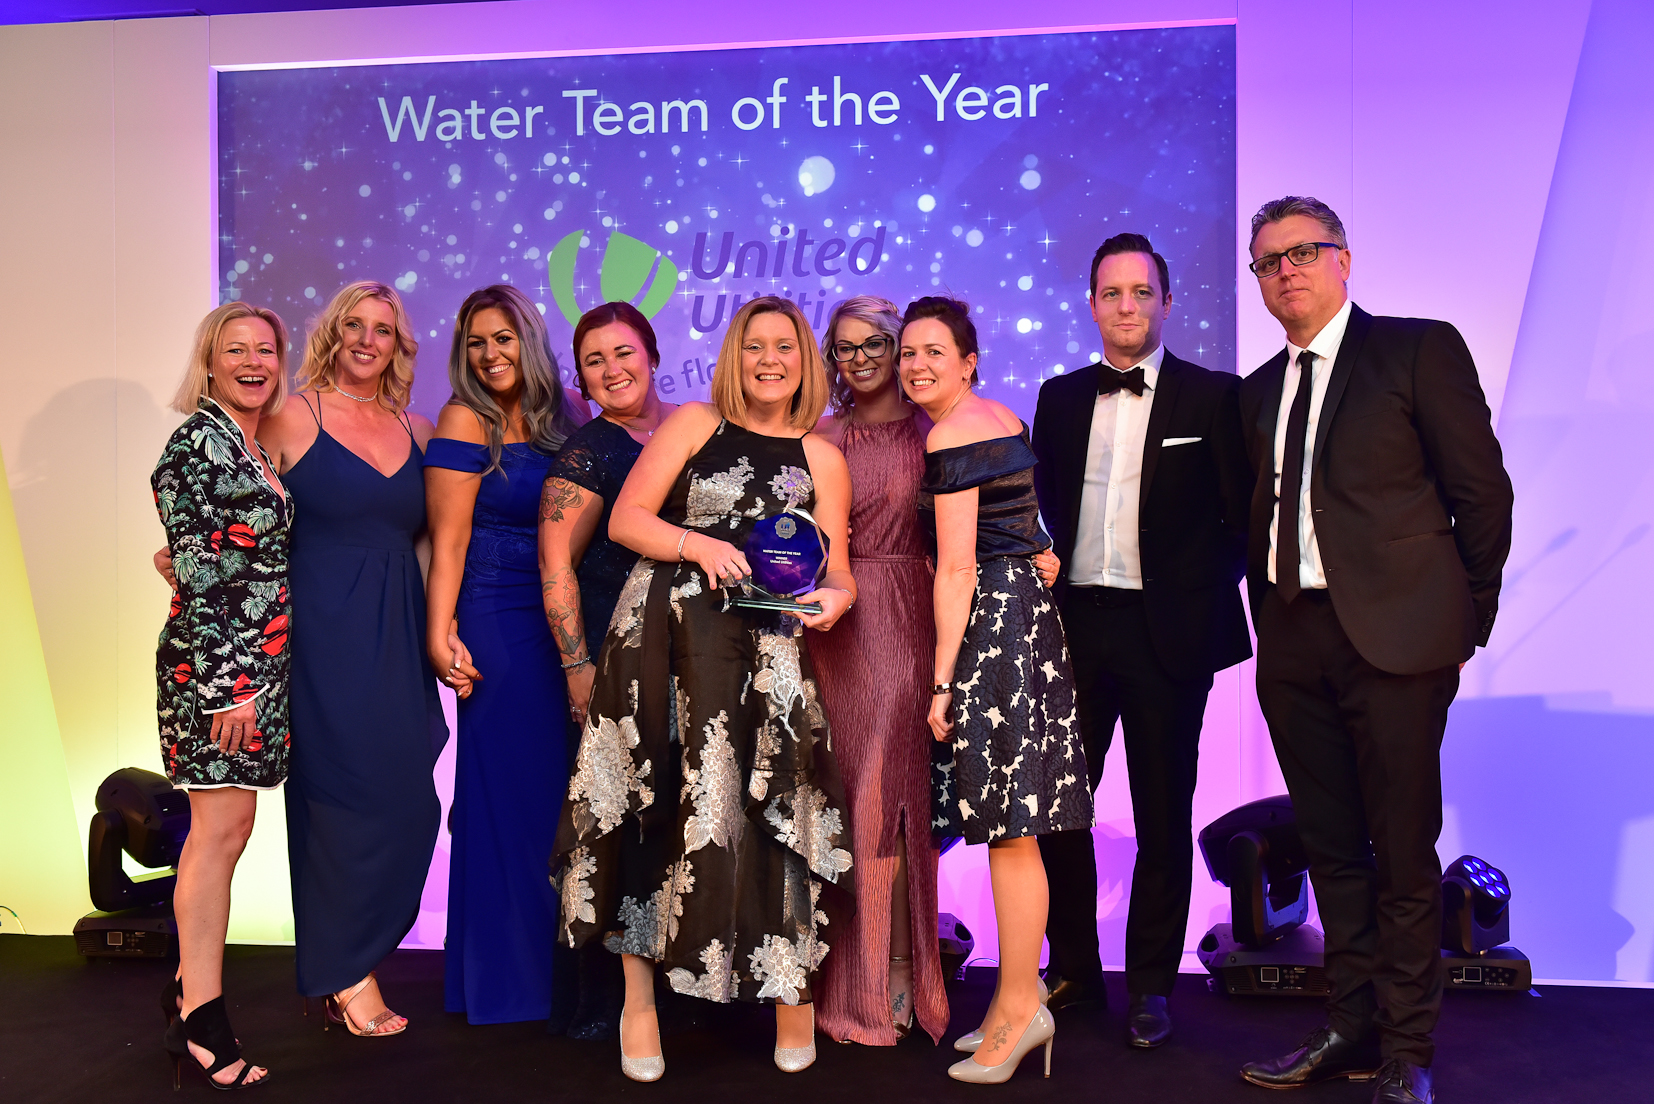 Winners U&TA 2017 - 8 Water Team of the Year